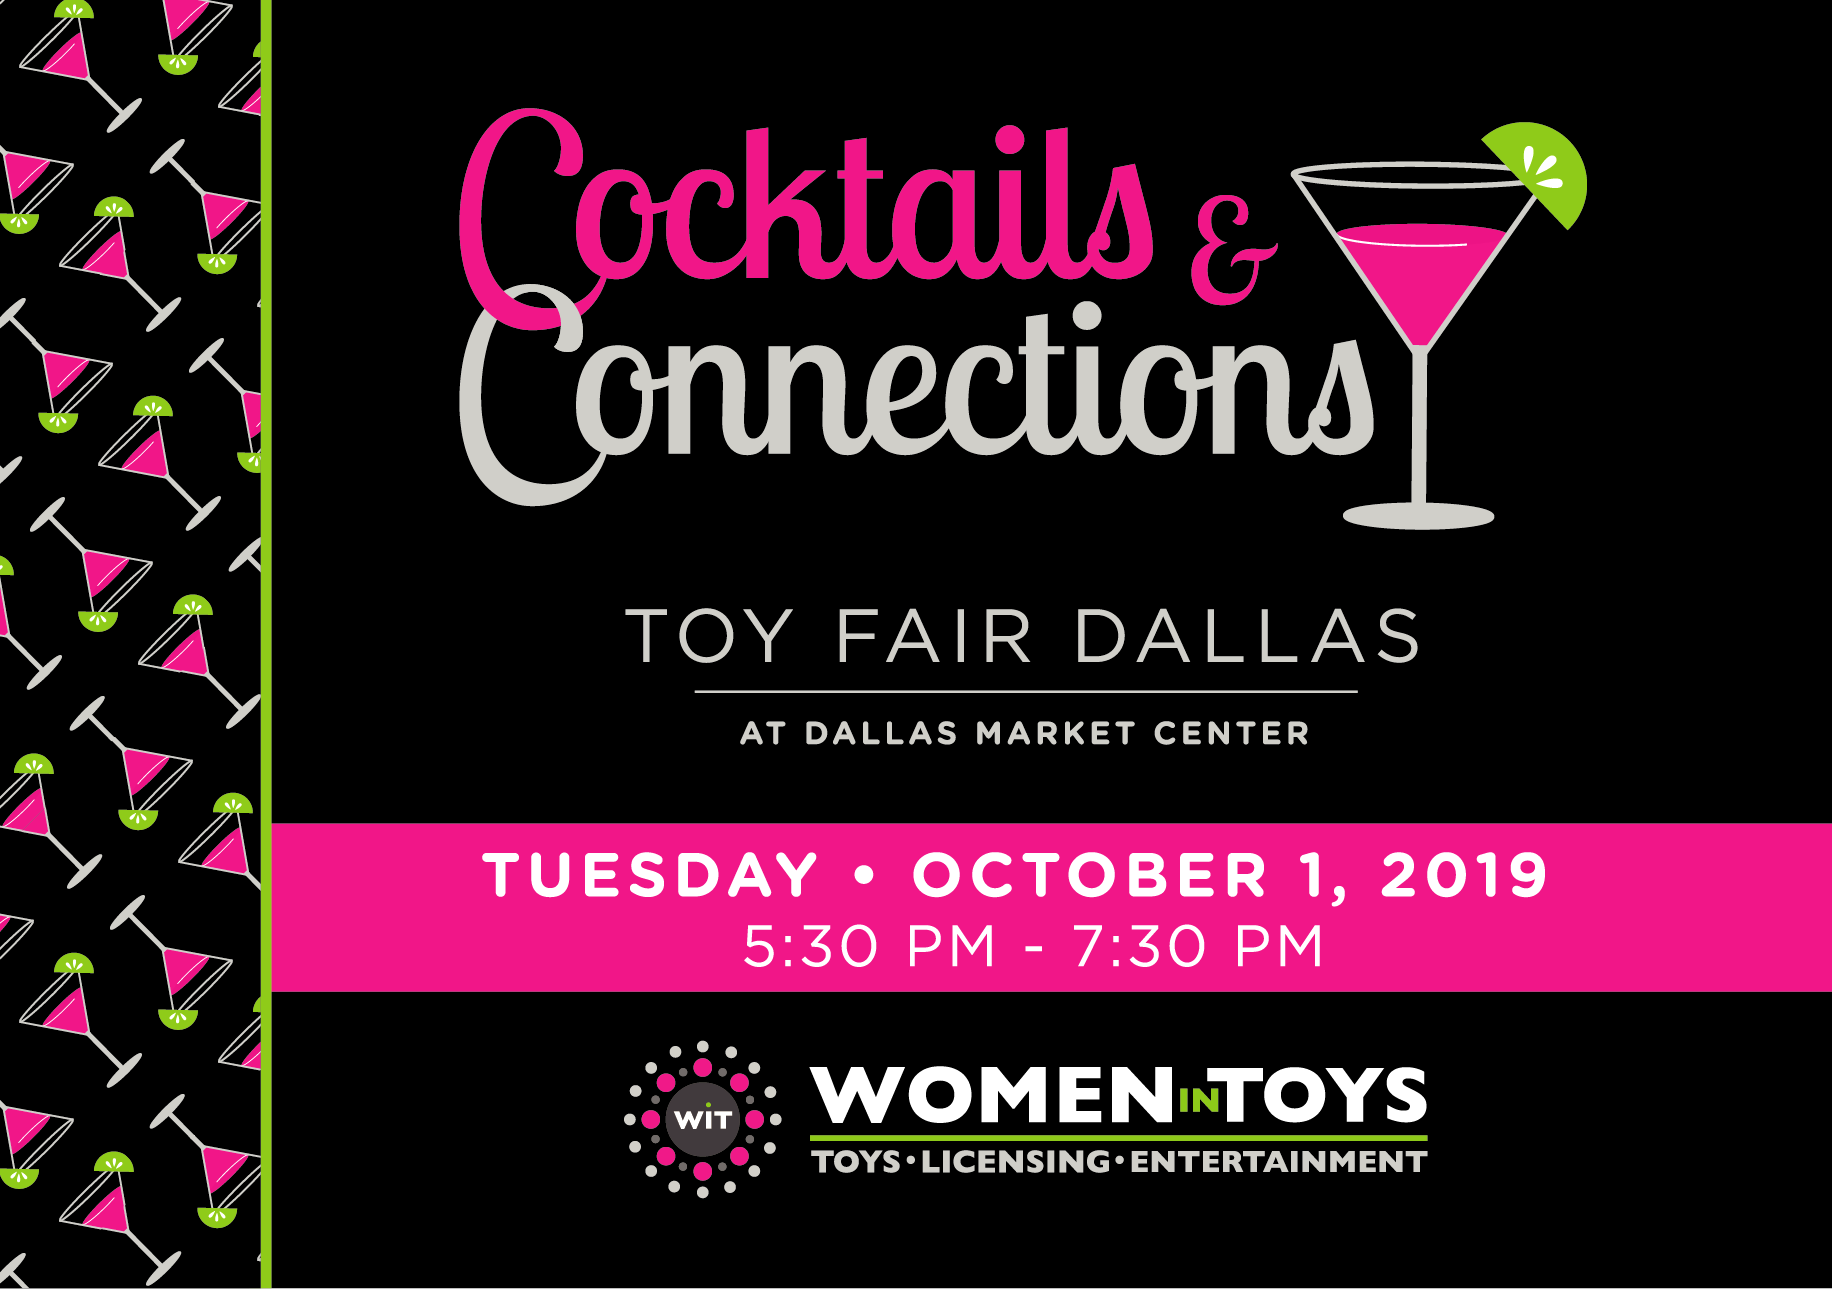 ToyFair_CocktailsandConnections-2019